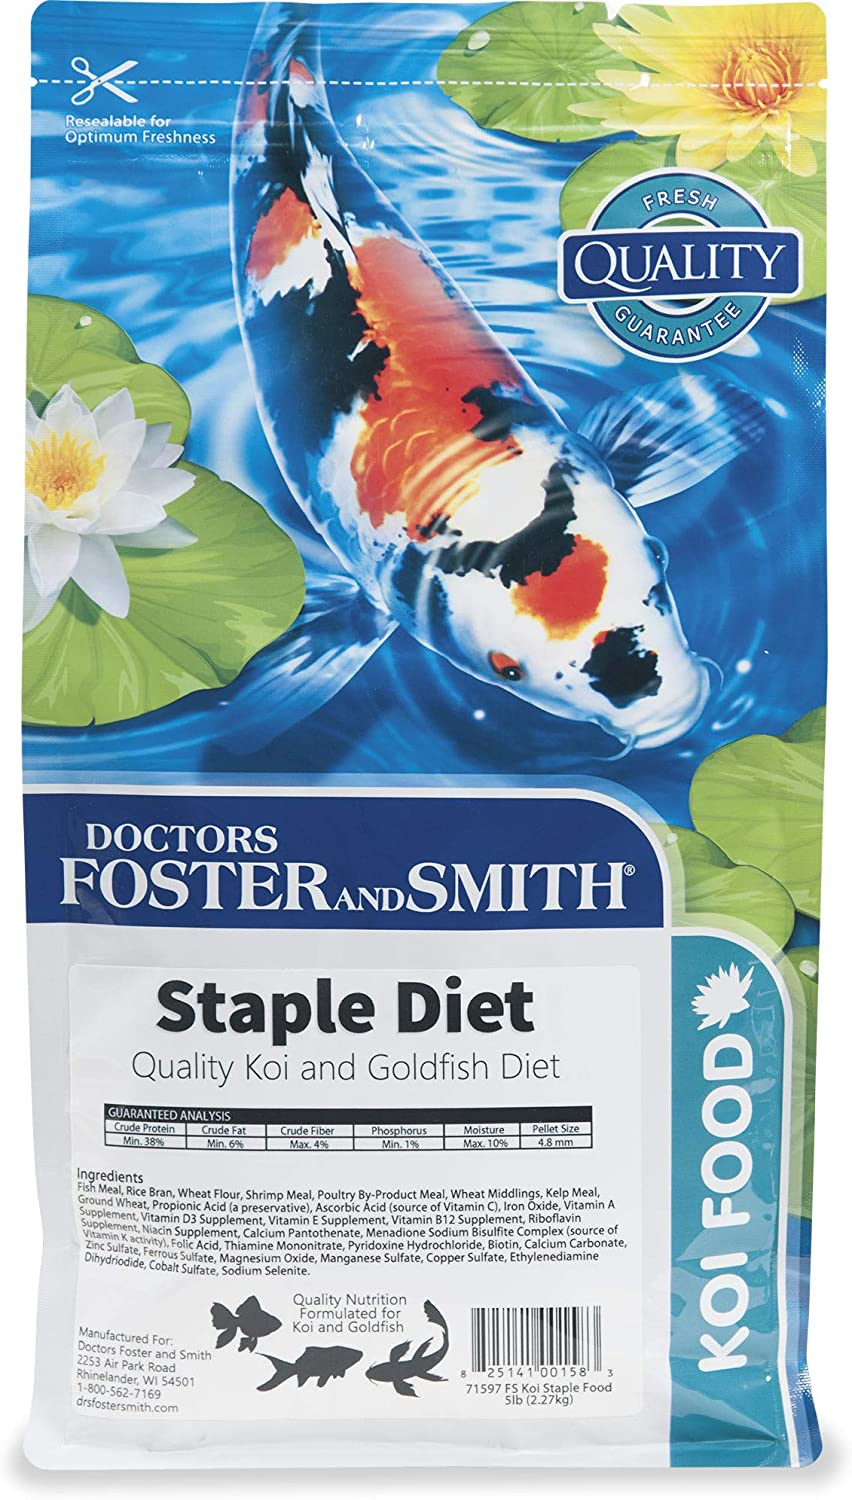 DRS. Foster and Smith Staple Diet Quality Koi and Goldfish Food, 5 lbs.